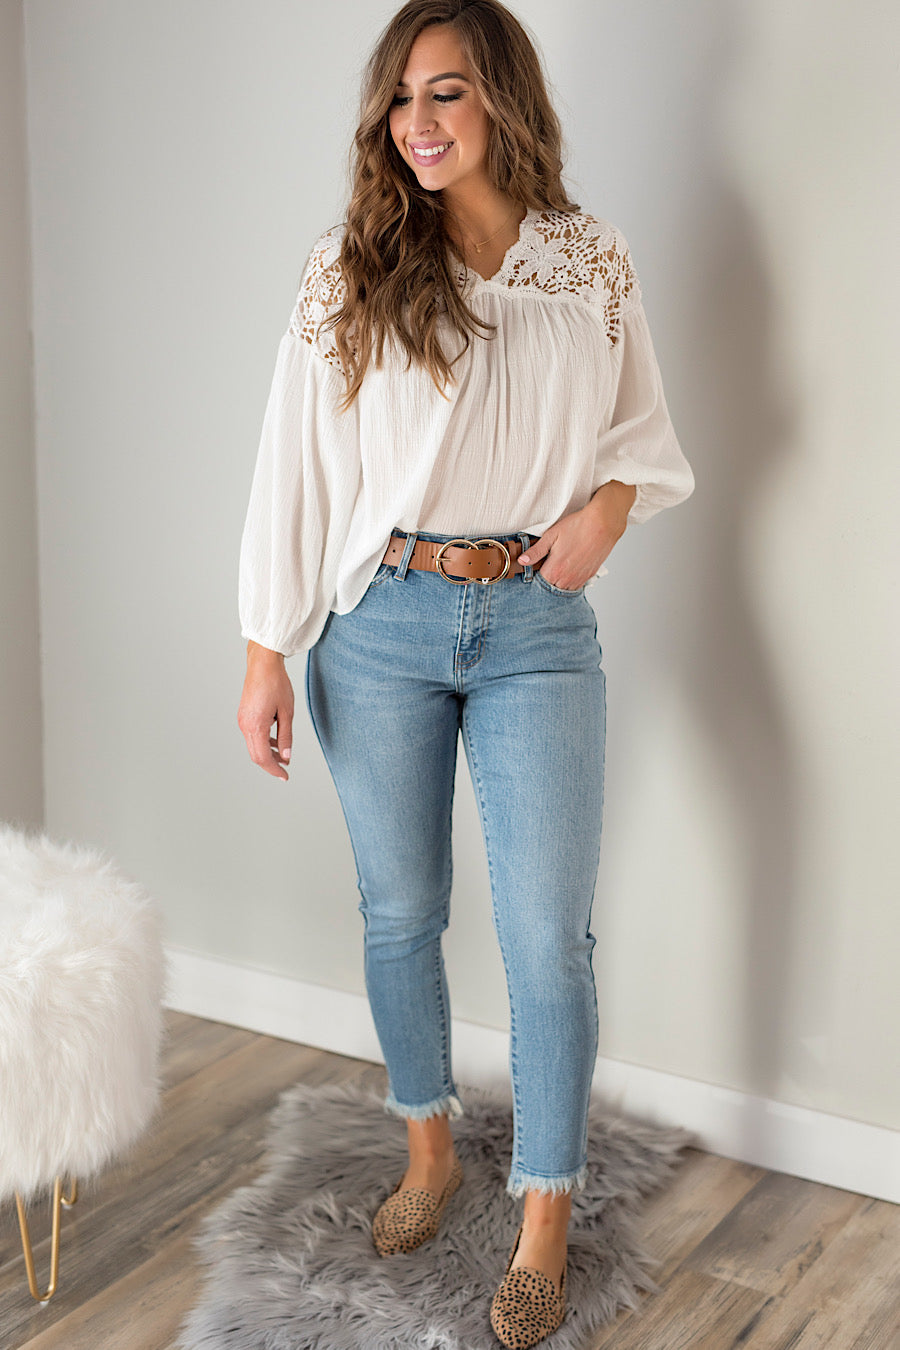 Coachella Crochet Blouse